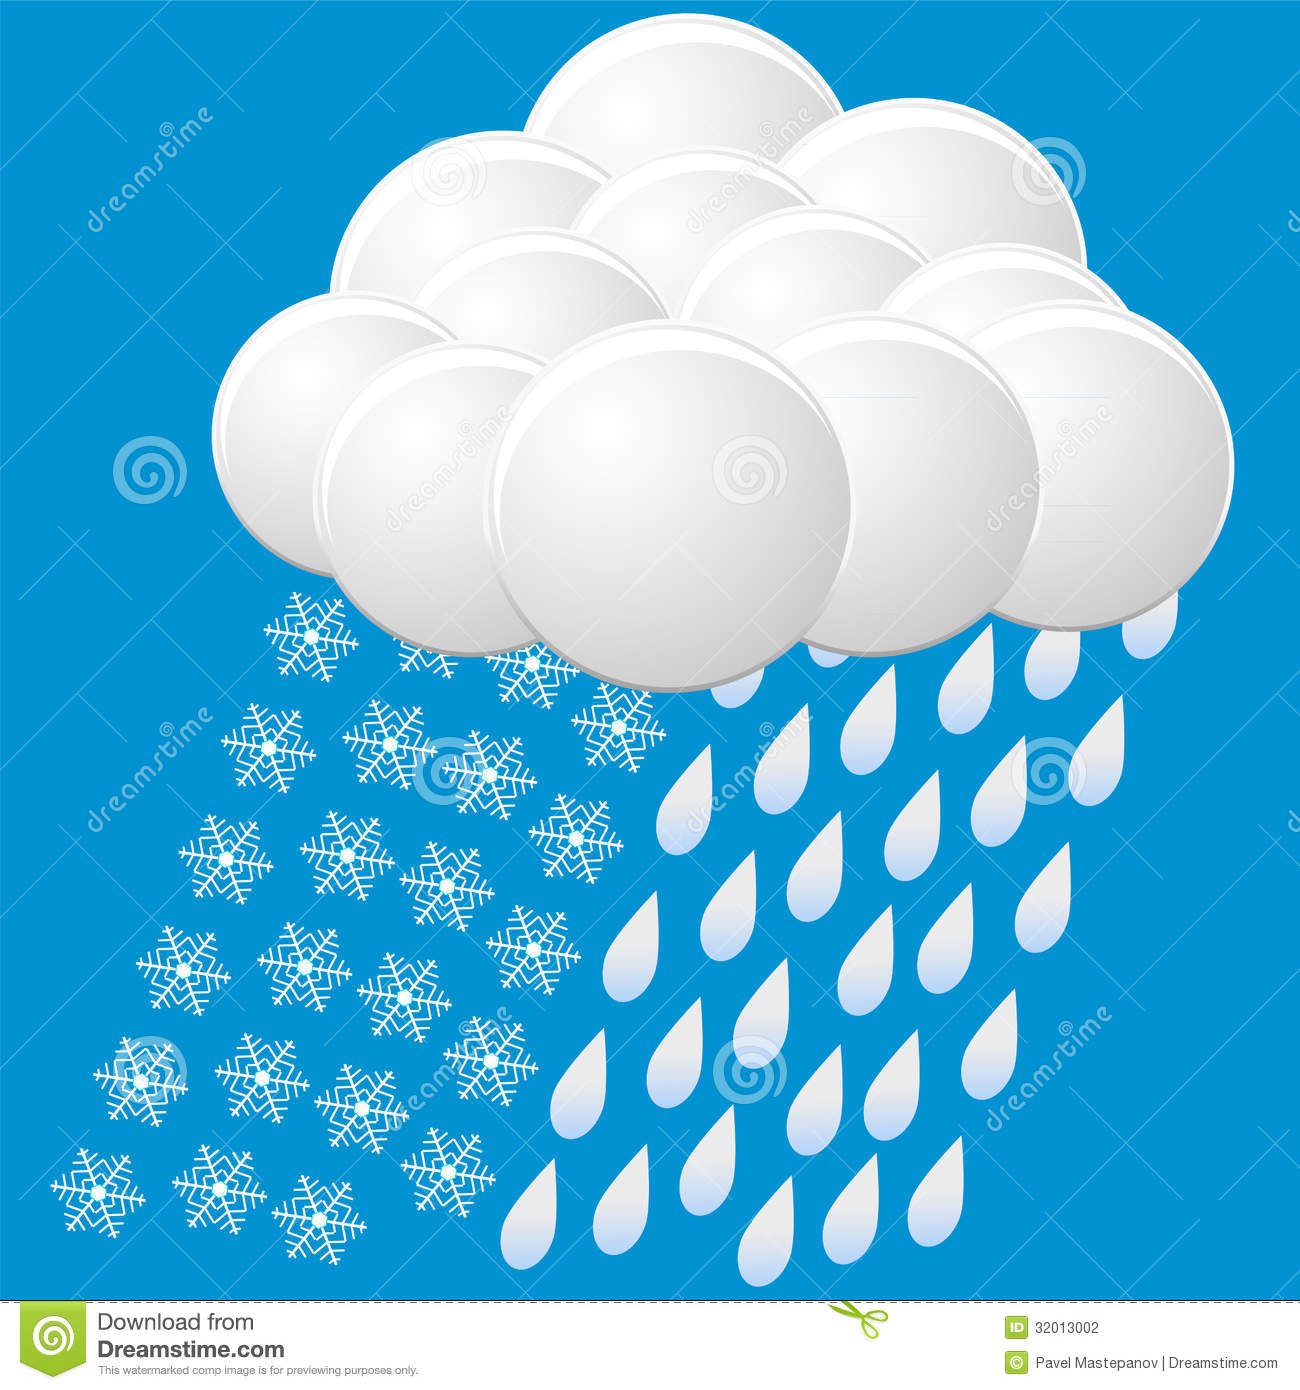 Rain and Snow Clip Art